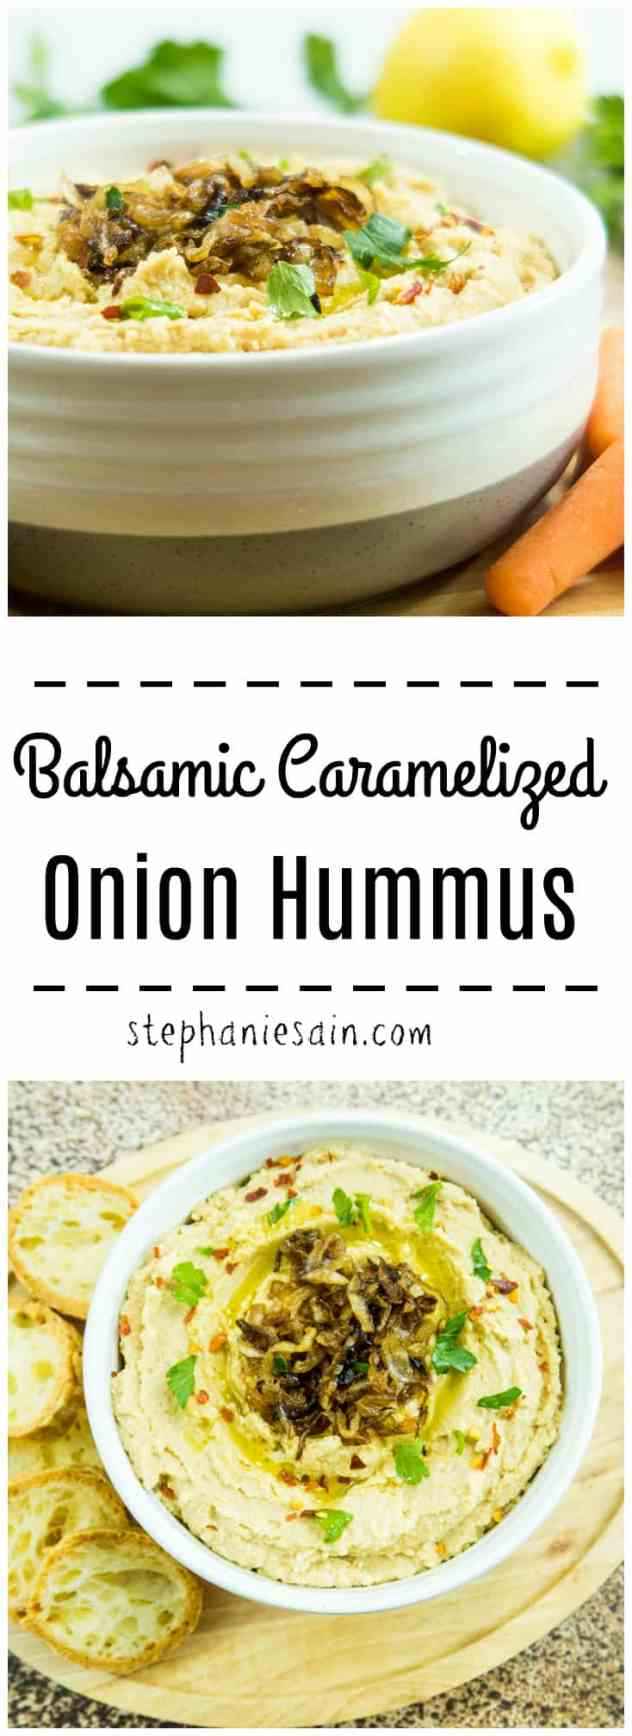 Balsamic Caramelized Onion Hummus is sweet, savory, and velvety smooth. Hummus & caramelized onions blended together for the perfect flavor combination. Perfect for appetizer, snacks or anytime. Gluten free & Vegan option.